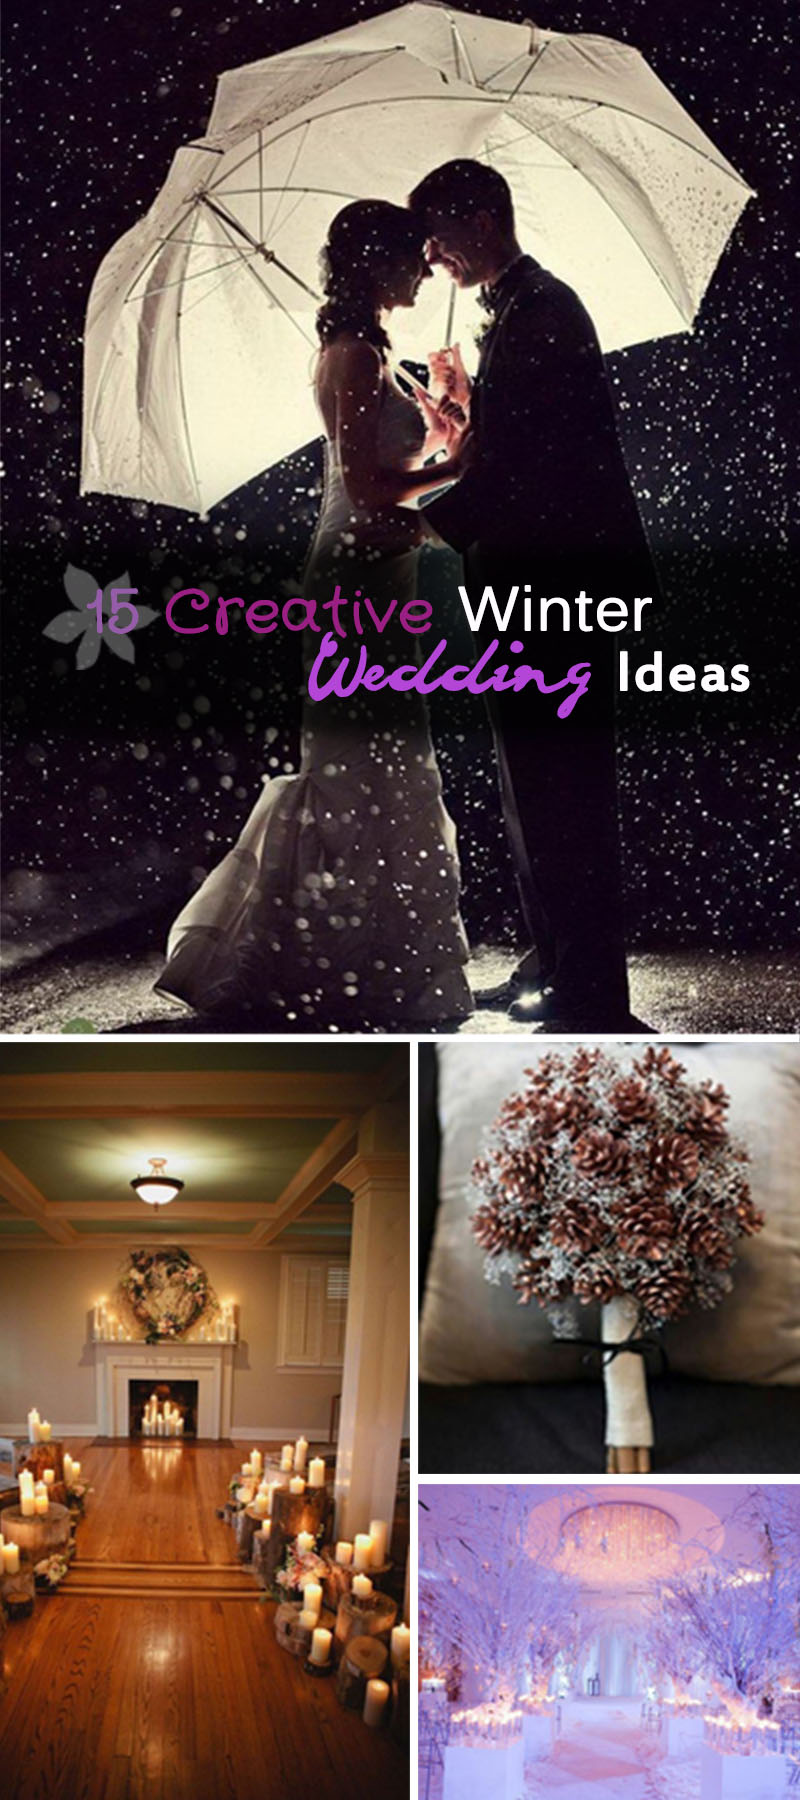 Creative Winter Wedding Ideas!